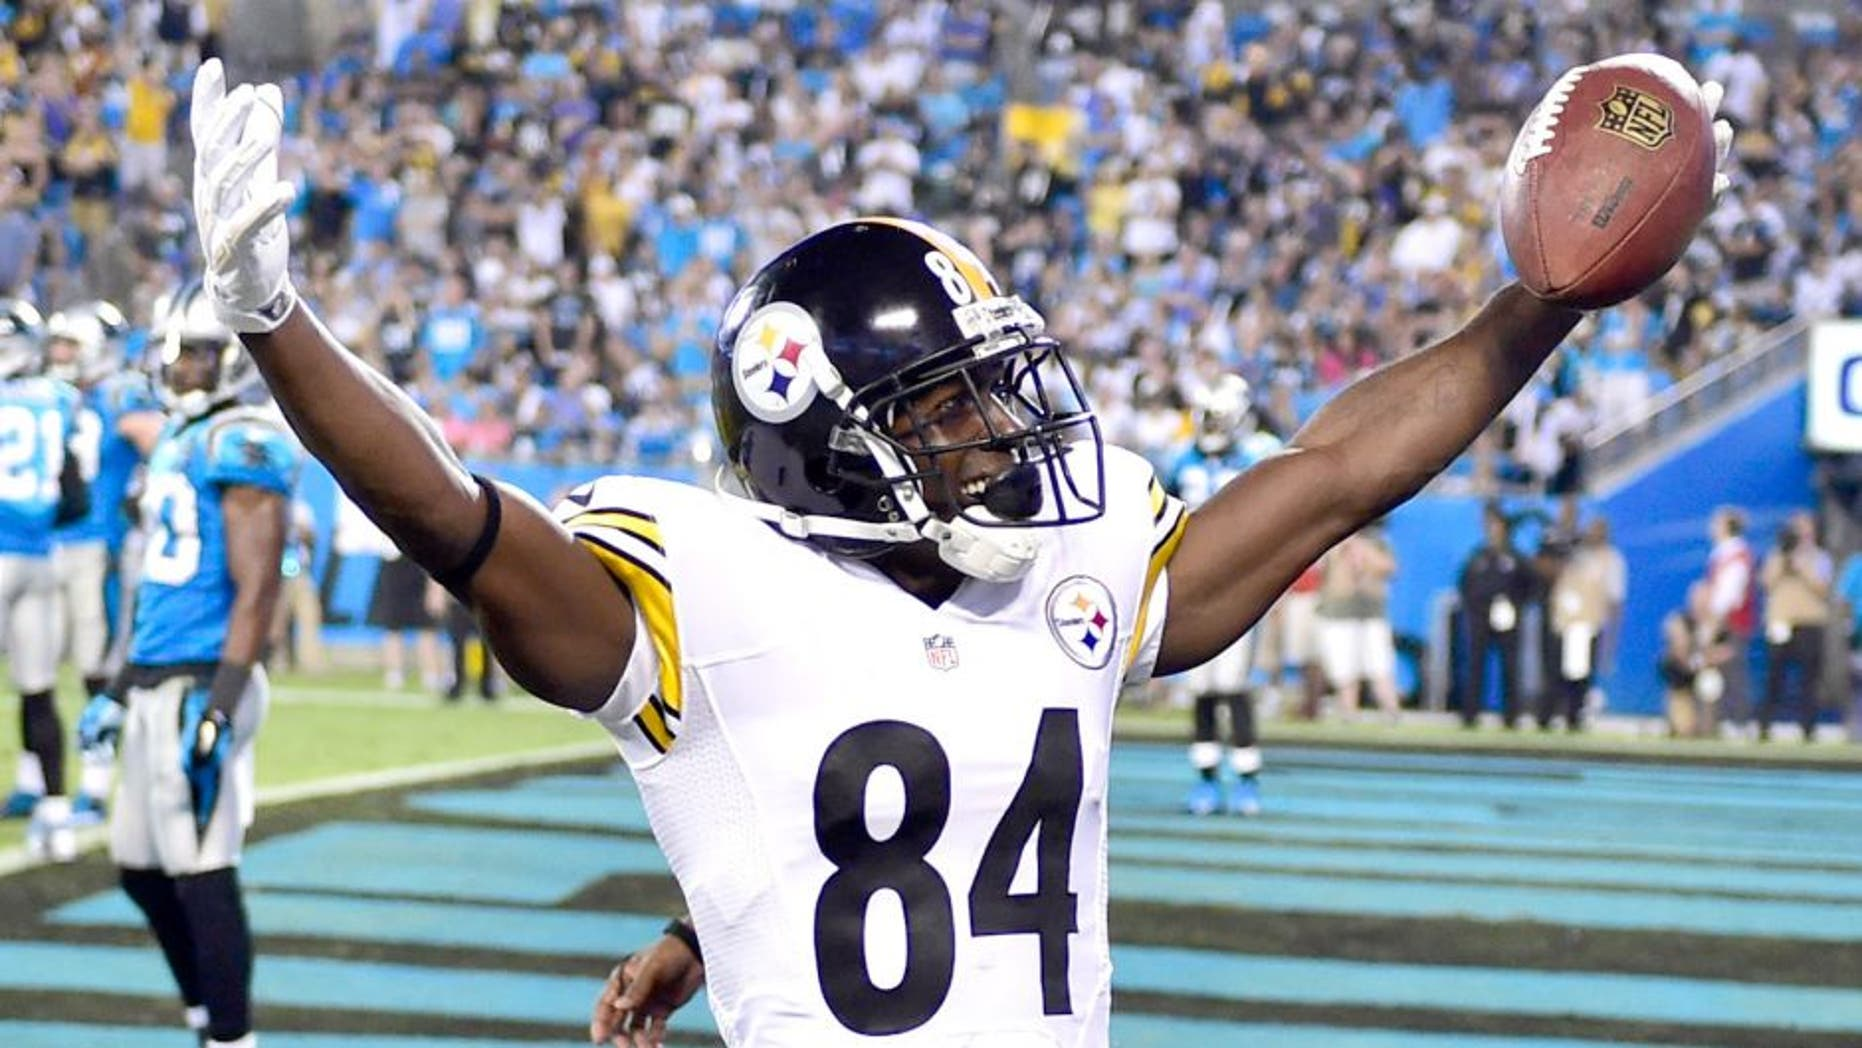 Sep 21, 2014; Charlotte, NC, USA; Pittsburgh Steelers wide receiver Antonio Brown (84) reacts after scoring a touchdown in the third quarter at Bank of America Stadium. Mandatory Credit: Bob Donnan-USA TODAY Sports